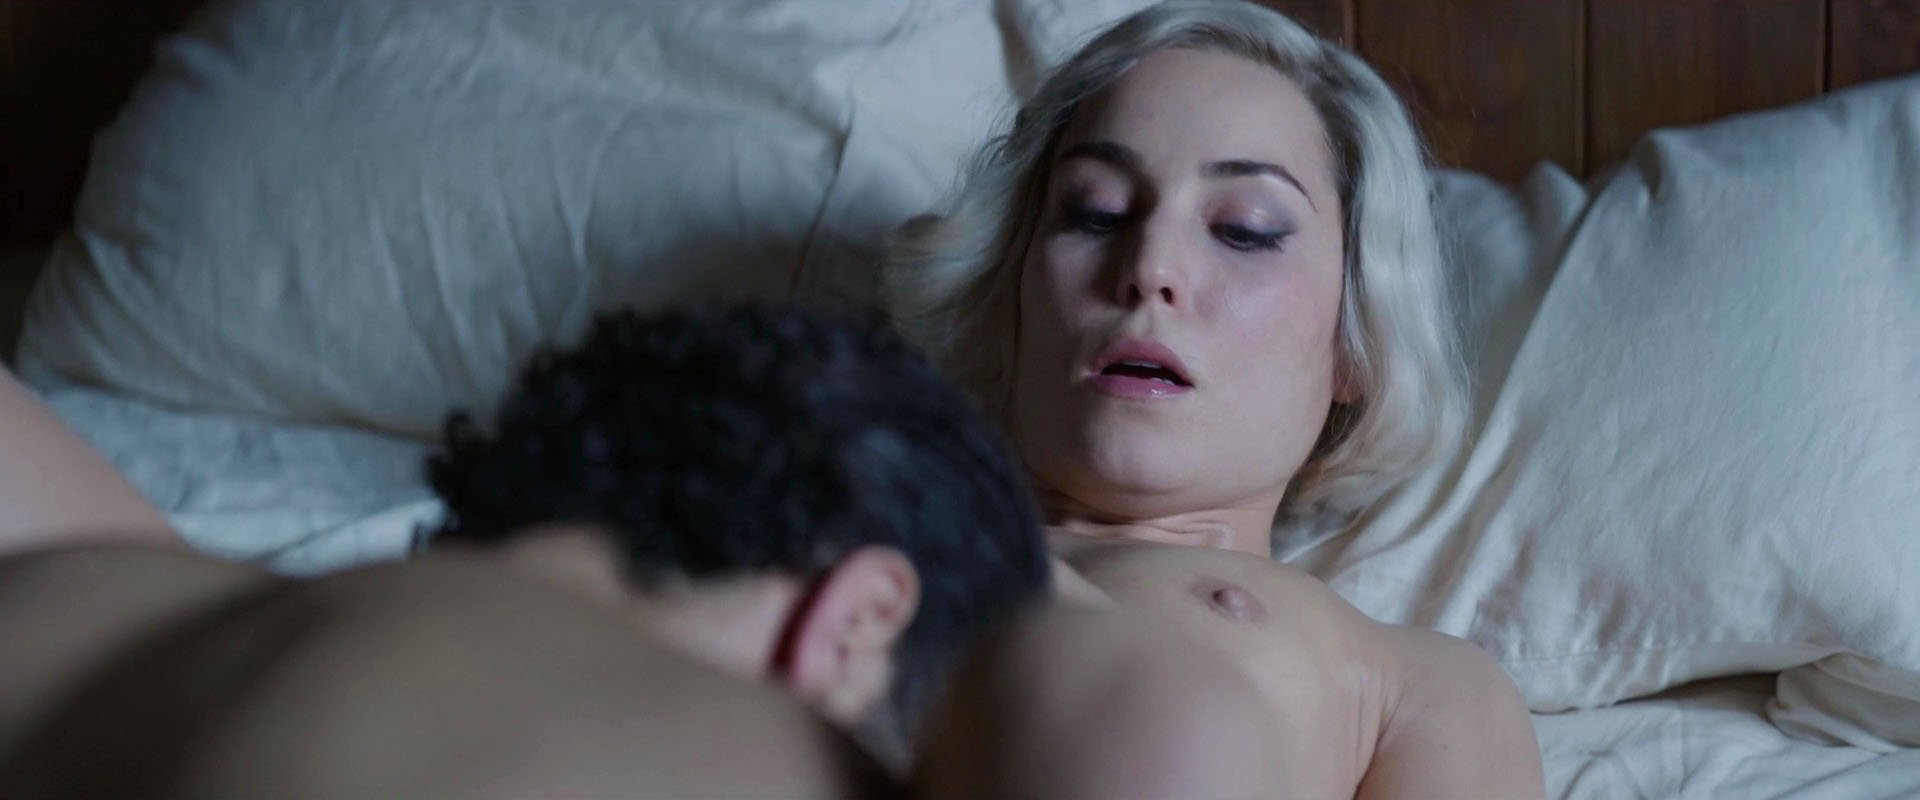 Nude Video Celebs  Noomi Rapace Nude - Seven Sisters 2017-3918